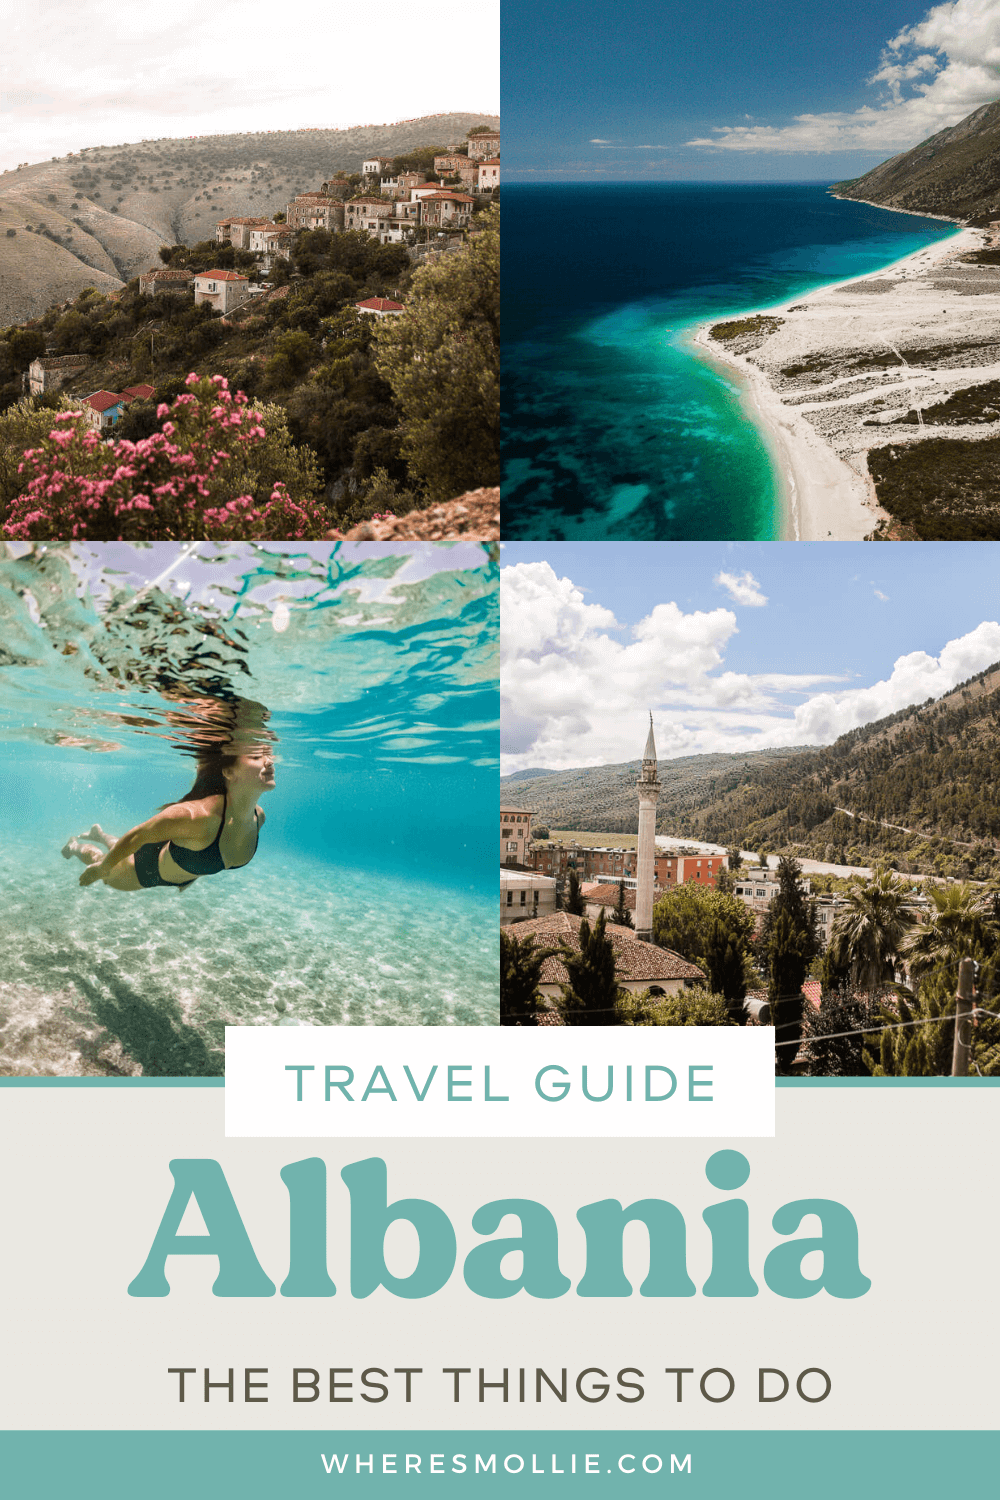 The best things to do in Albania